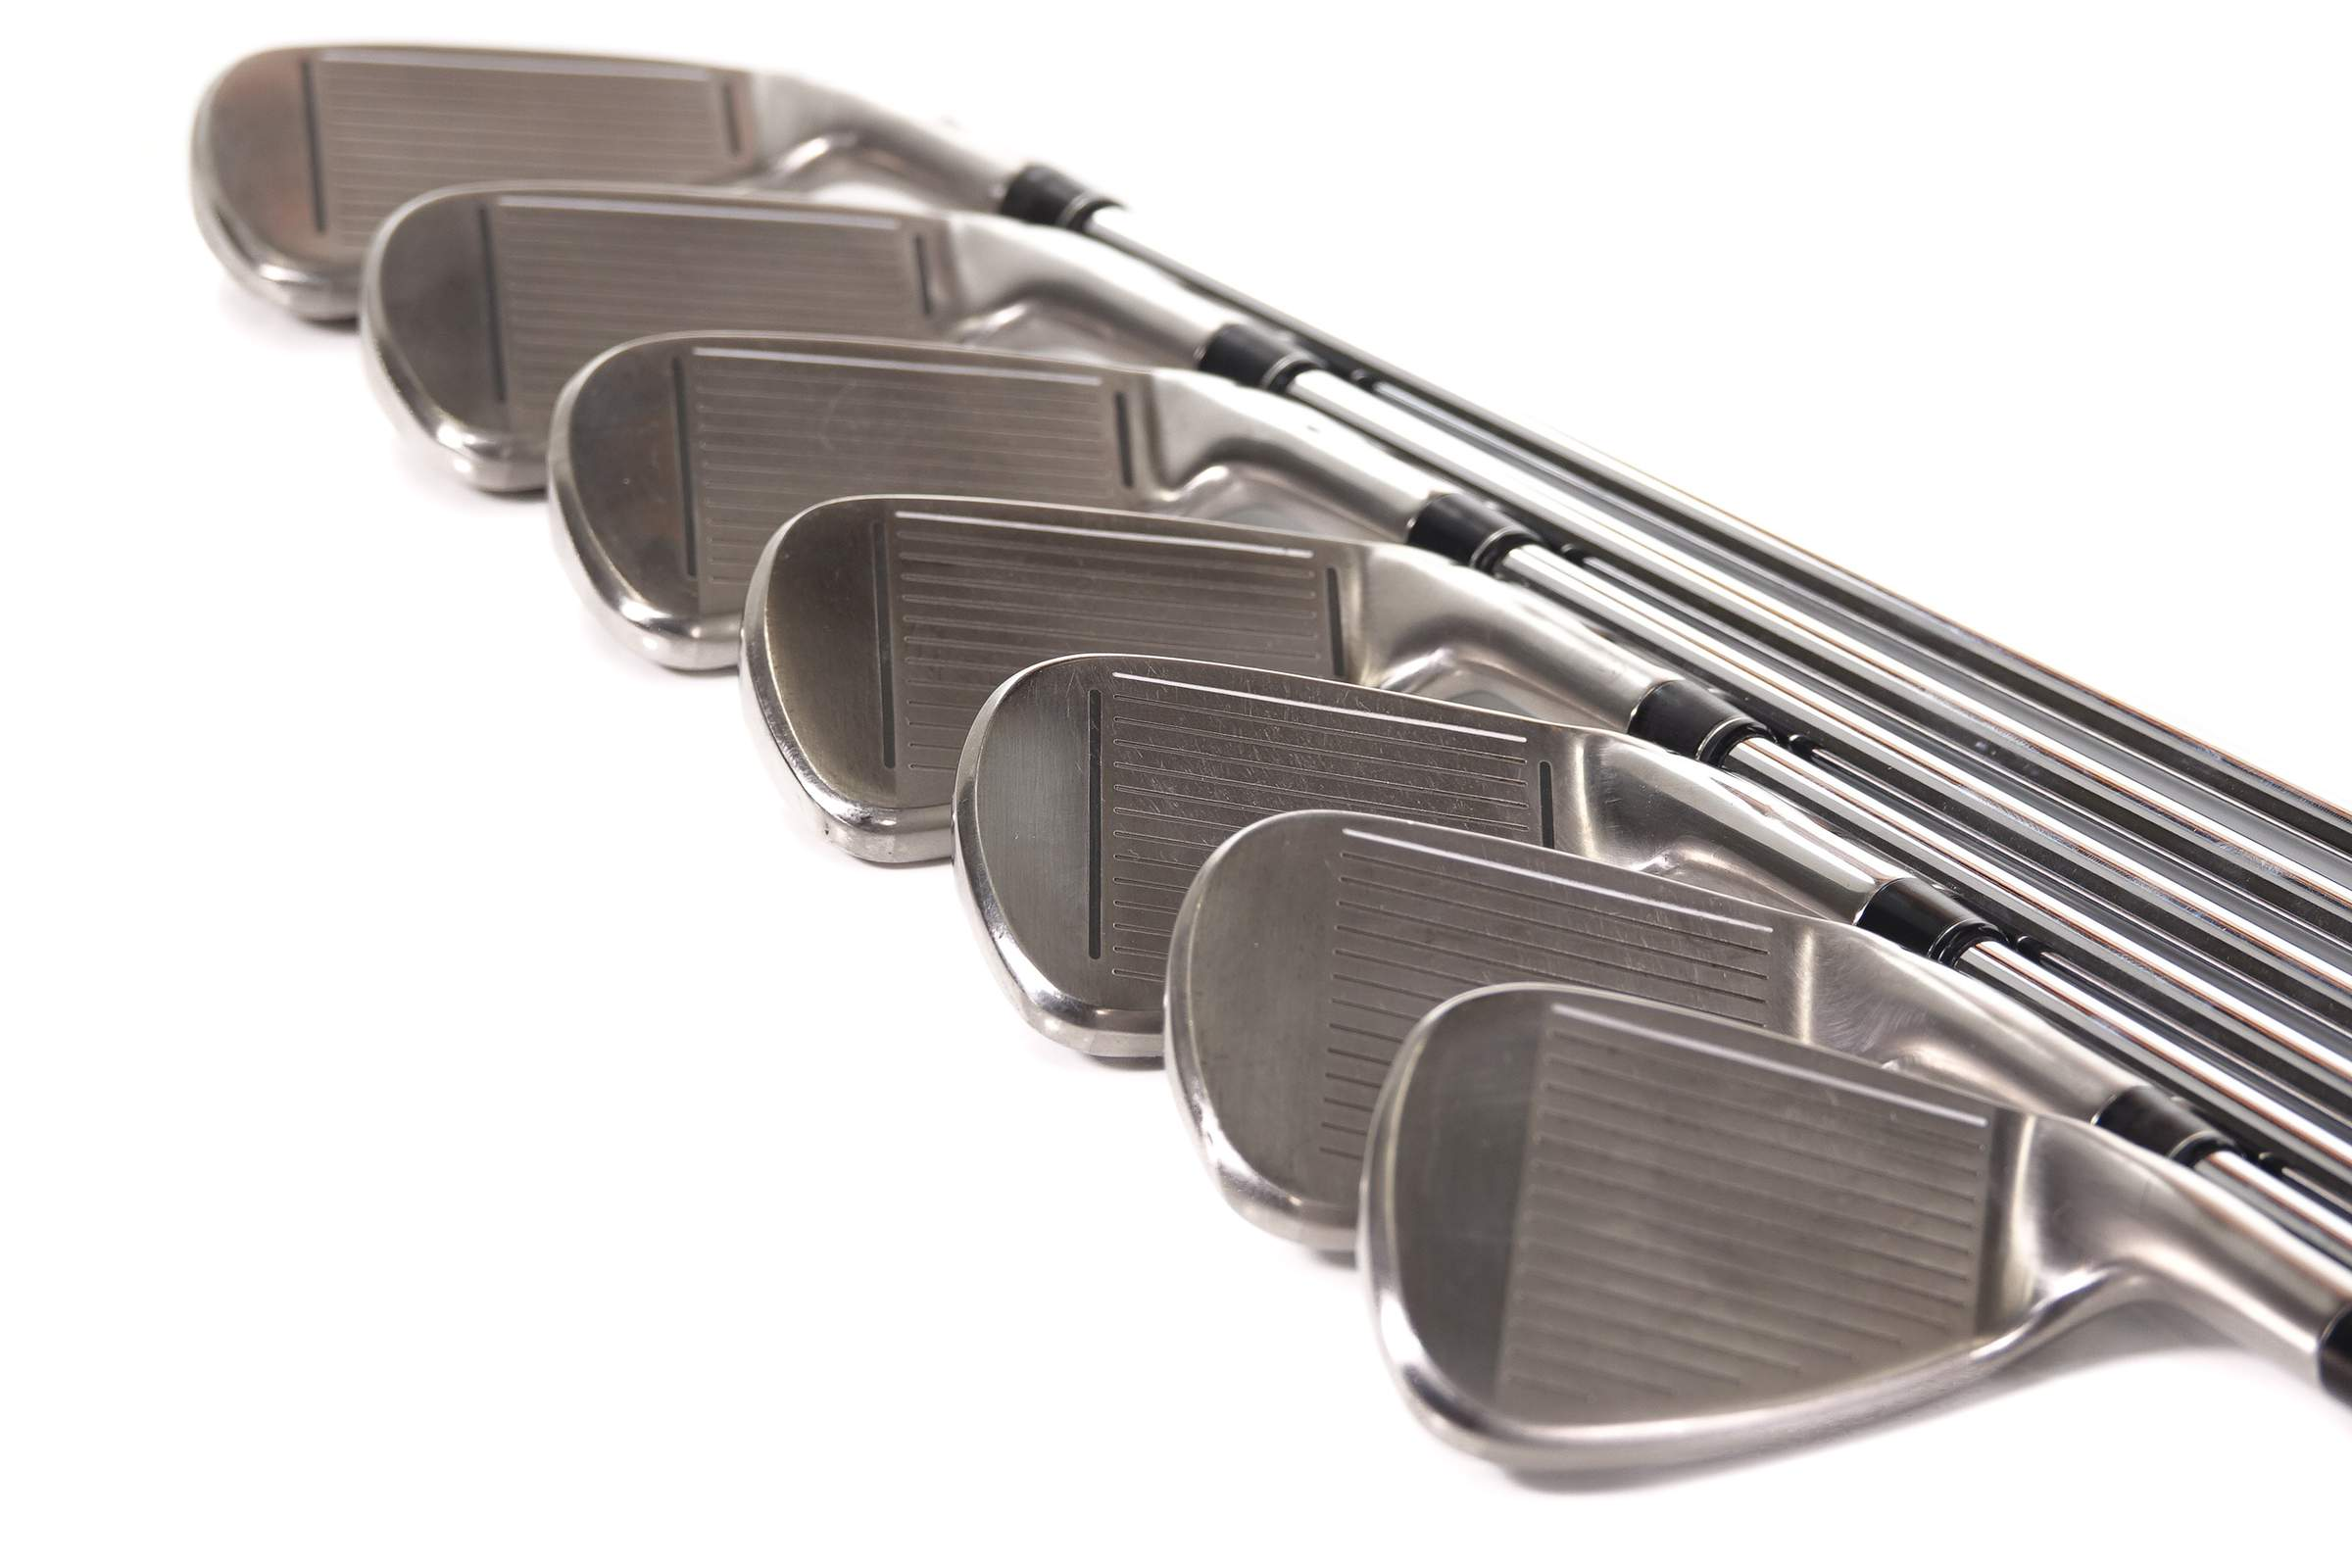 TaylorMade M3 Irons Steel Shaft 4-PW - Left Hand, 36